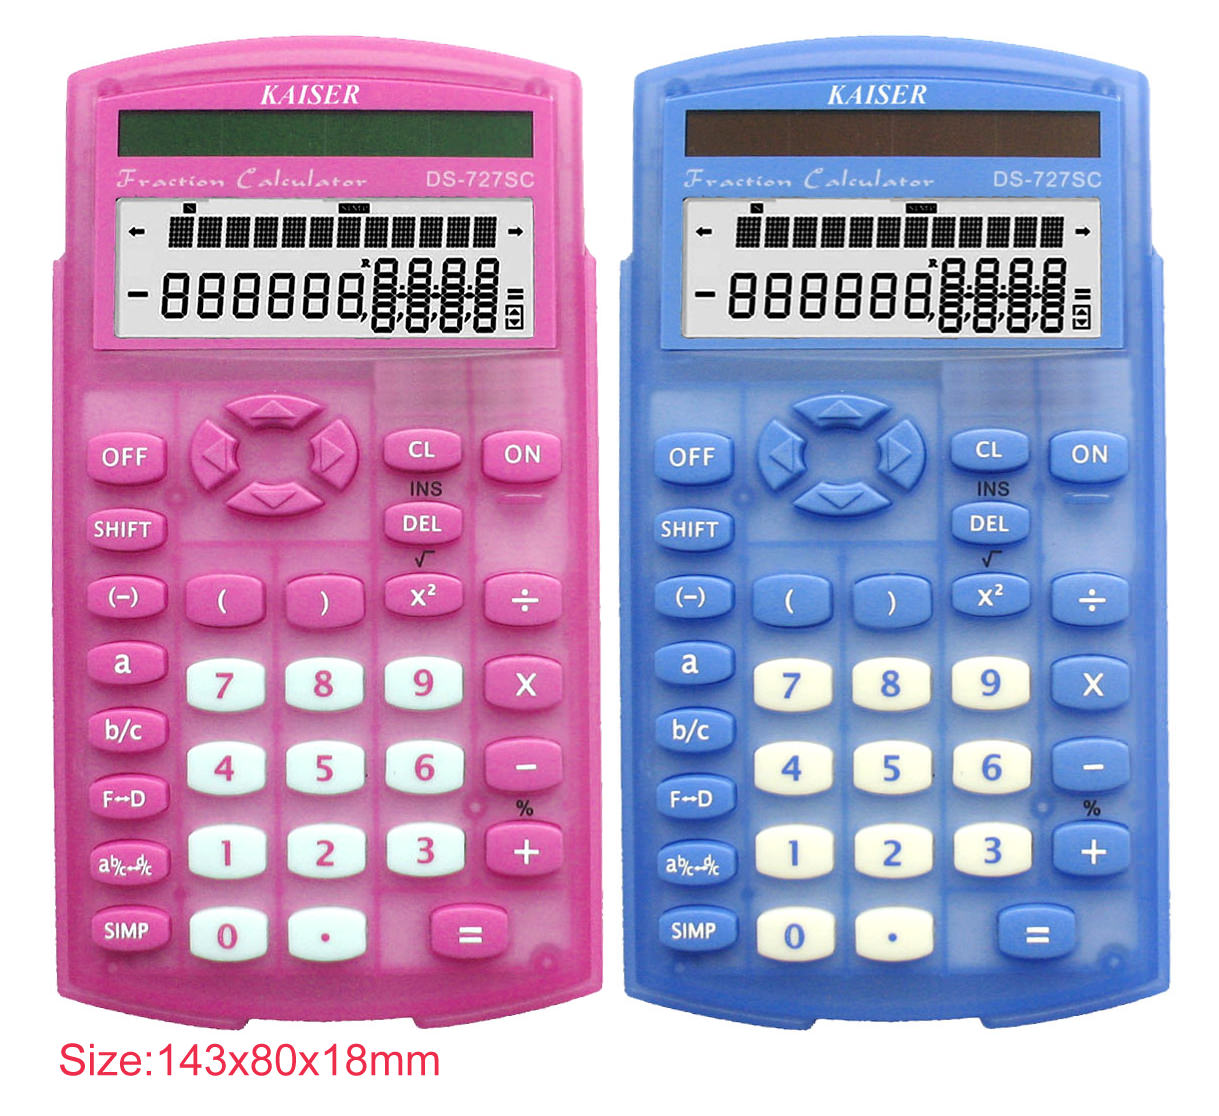 2-line 10 digit scientific calculator